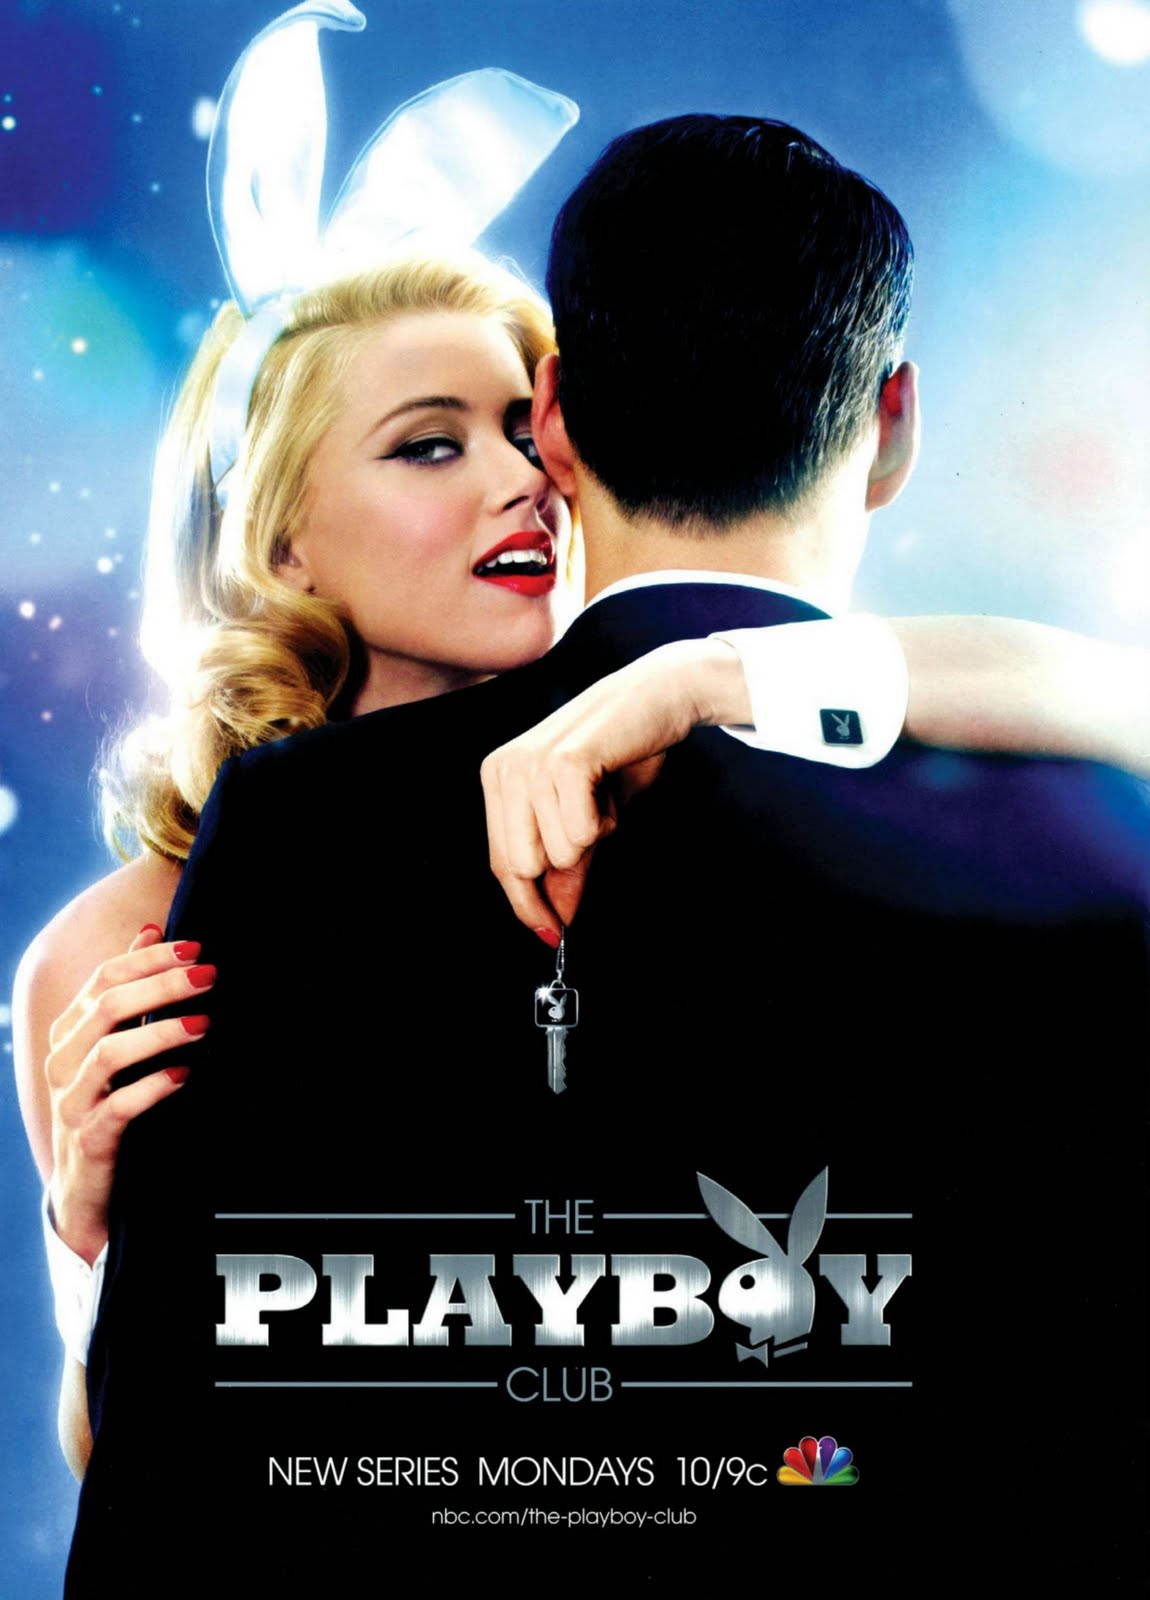 [Wupload] [HDTV] The Playboy Club - Saison 1 Episodes 1 à 2/?? [VOSTFR]